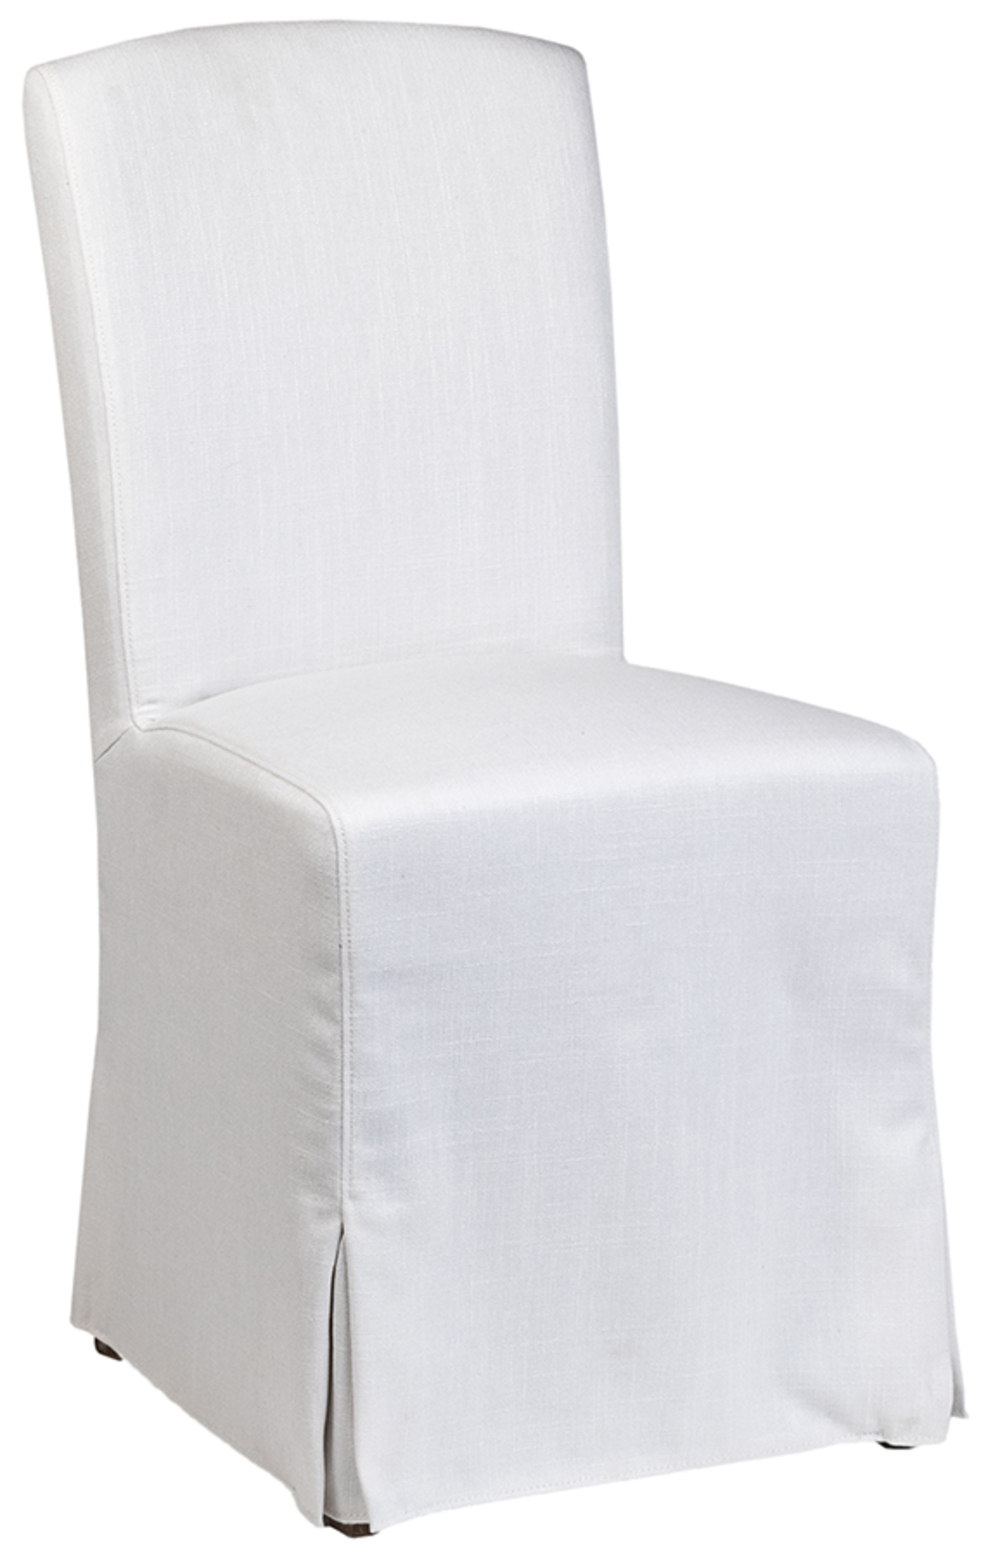 Dovetail Furniture - Judith Dining Chair